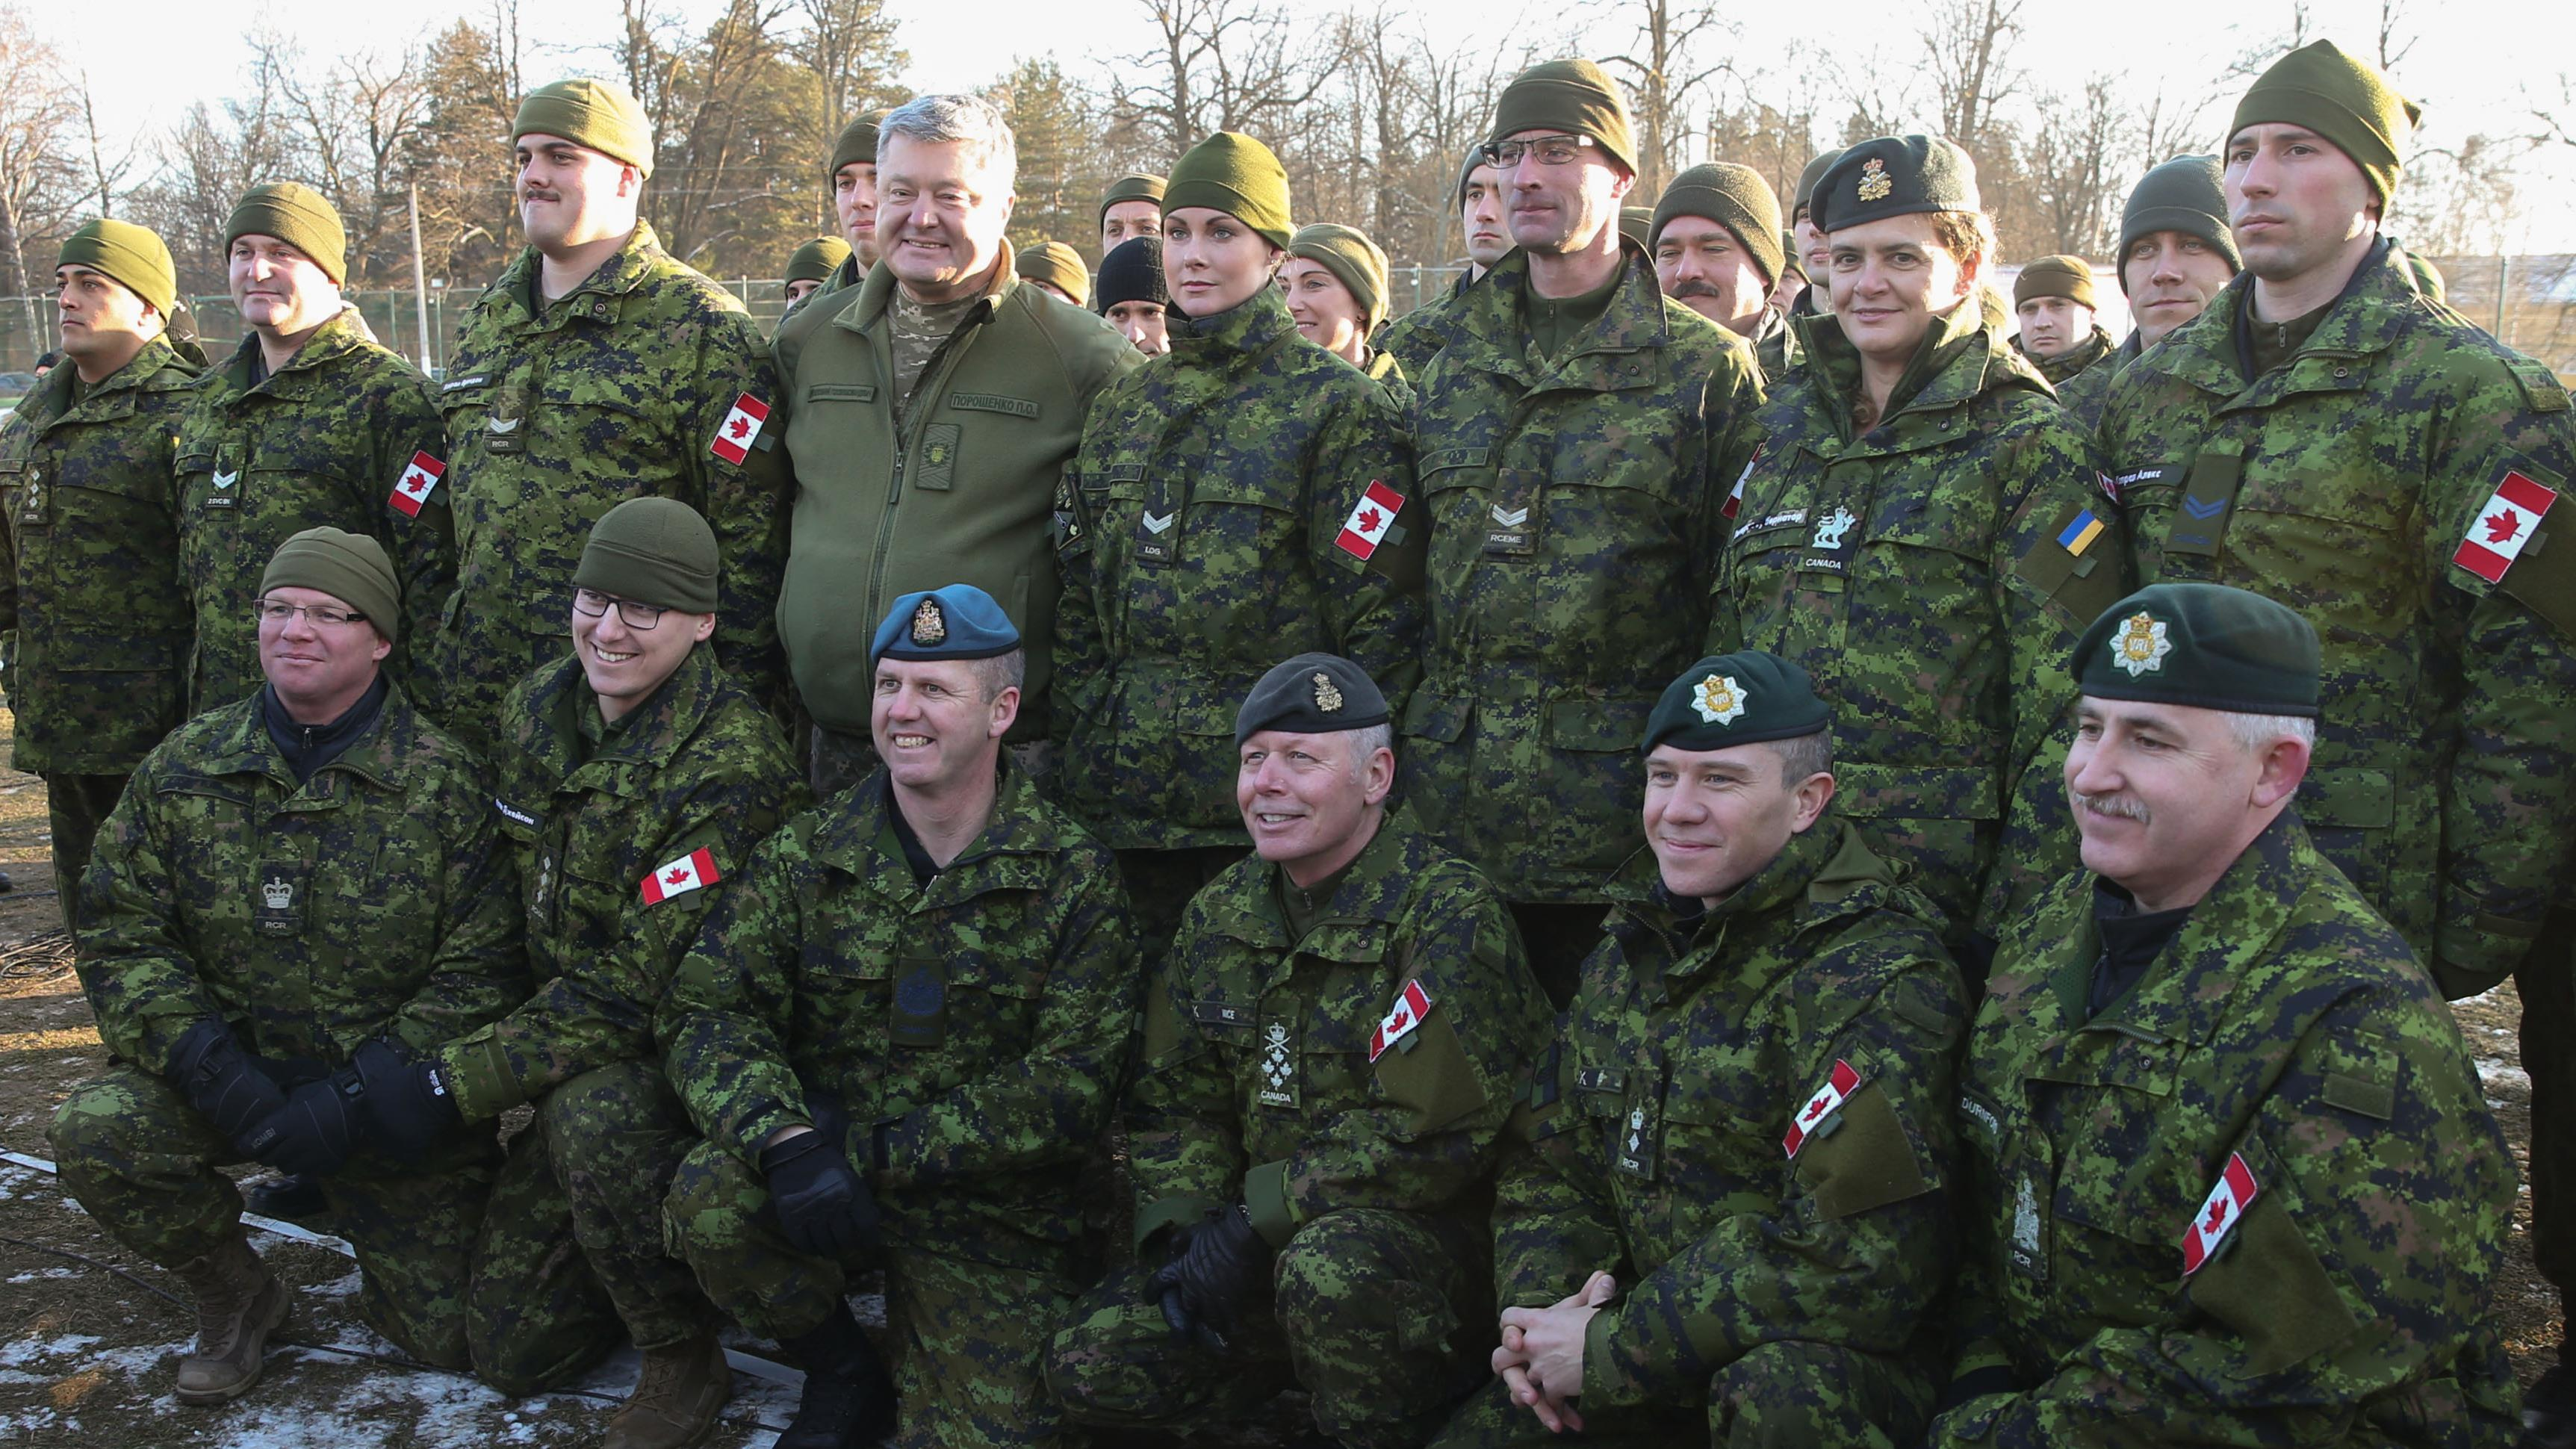 Canadian Gov. Gen. Julie Payette (second right, top row) and Ukrainian President Petro Poroshenko pose for a photo with Canadian soldiers at the International Peacekeeping and Security Centre, on Thursday, Jan. 18, 2018.